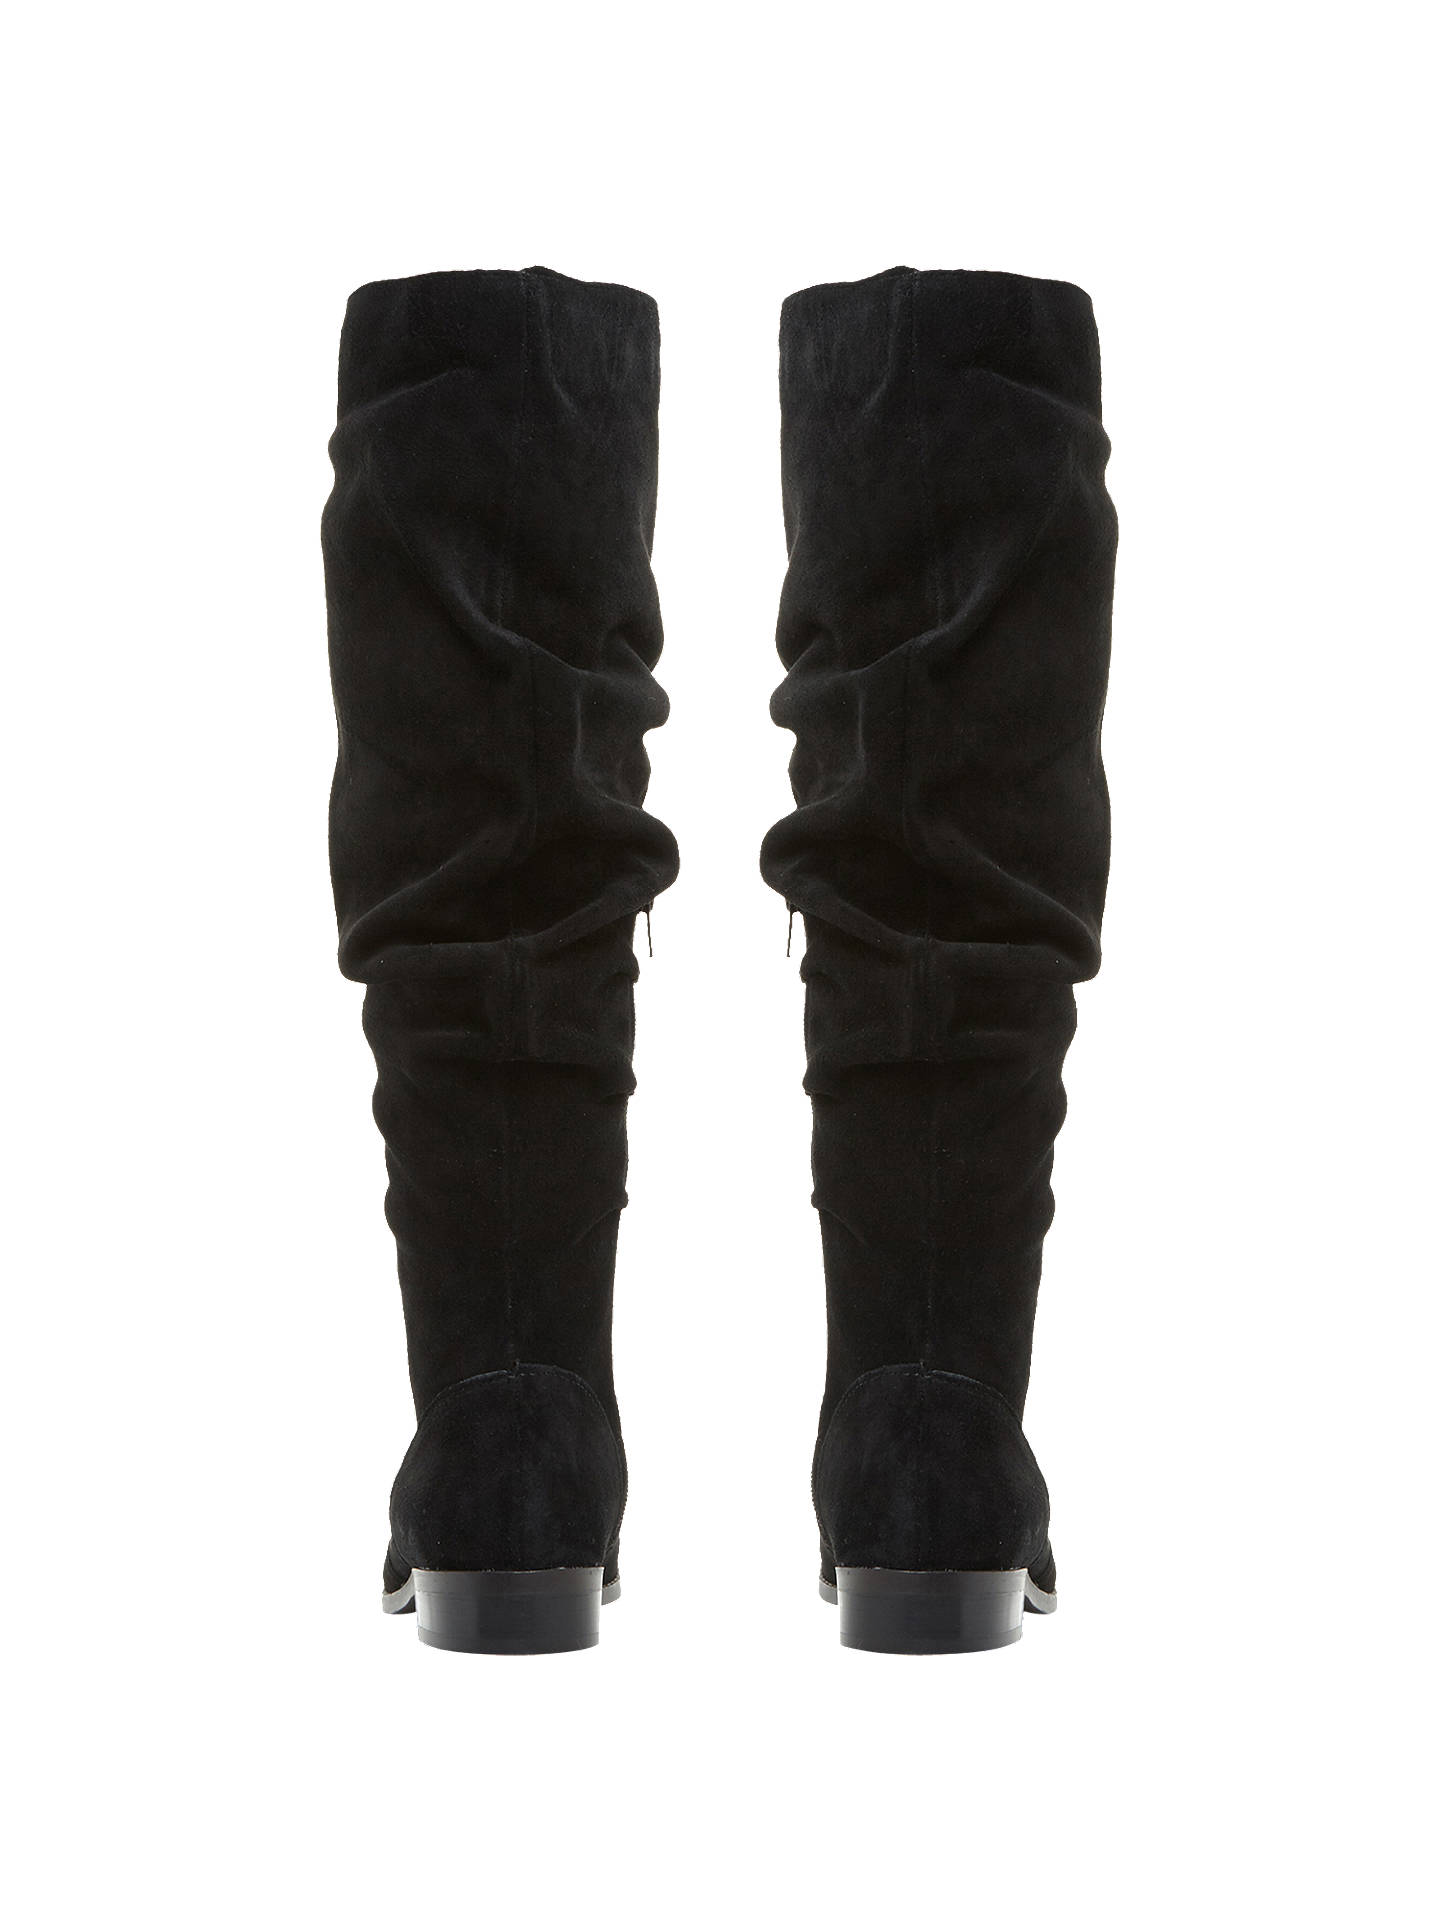 678827a0b61 ... Buy Steve Madden Beacon Ruched Knee High Boots